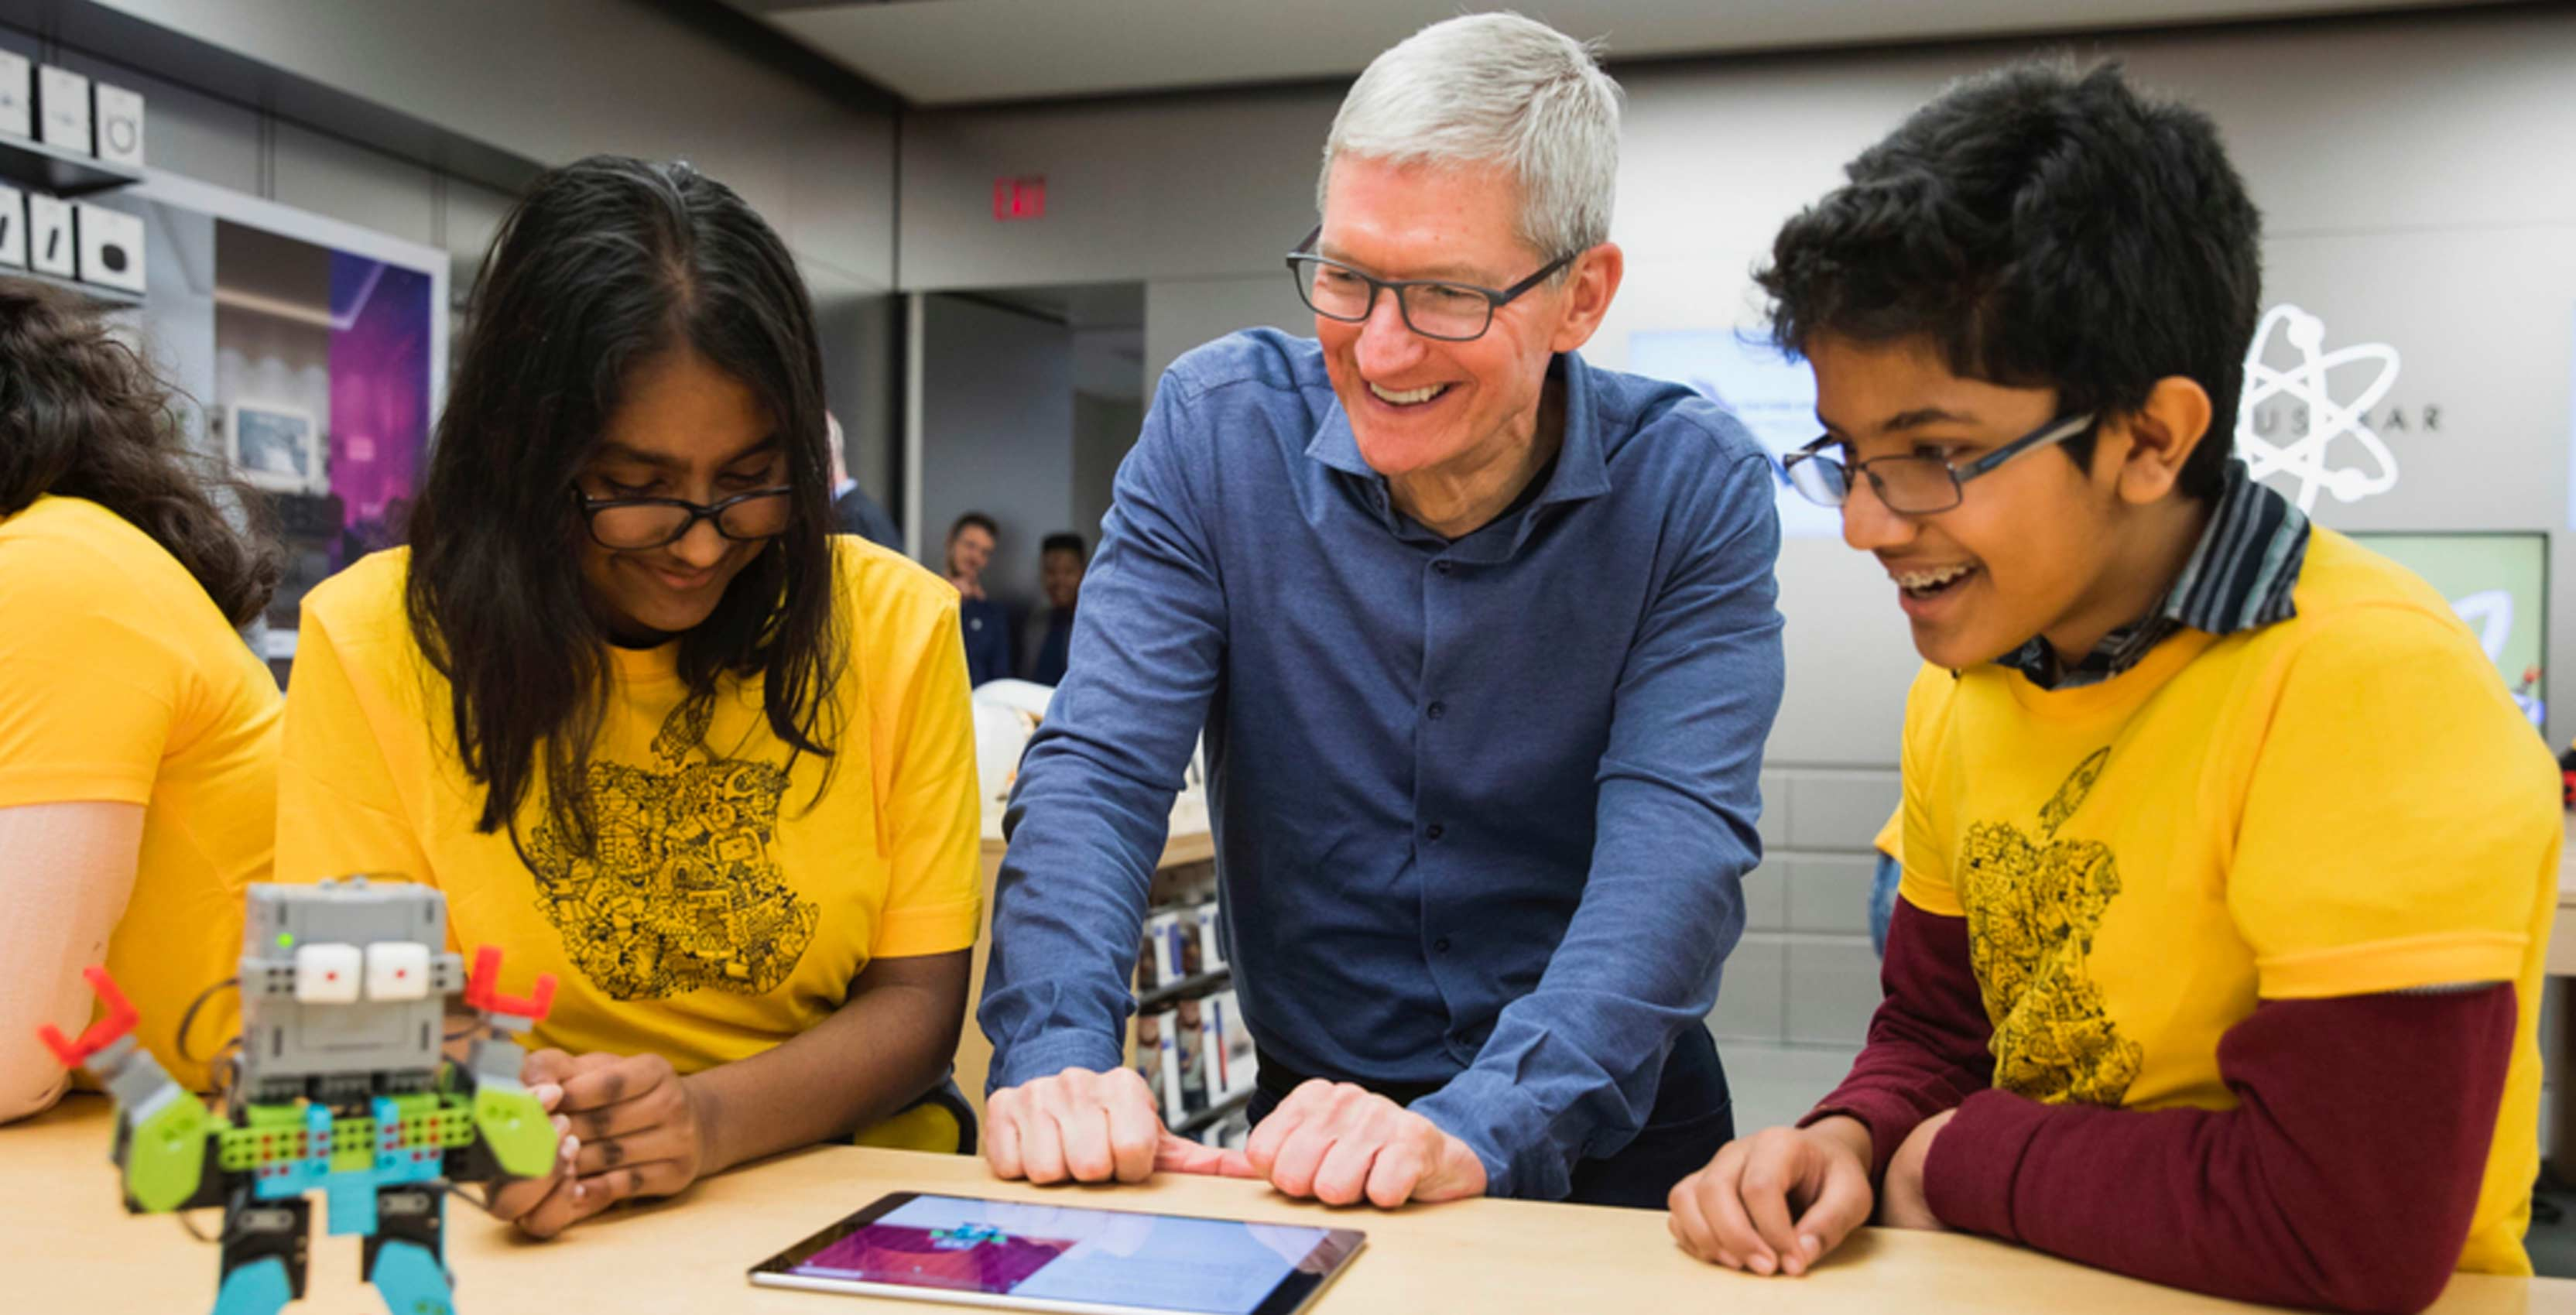 Tim Cook visited Toronto's Eaton Centre Apple Store